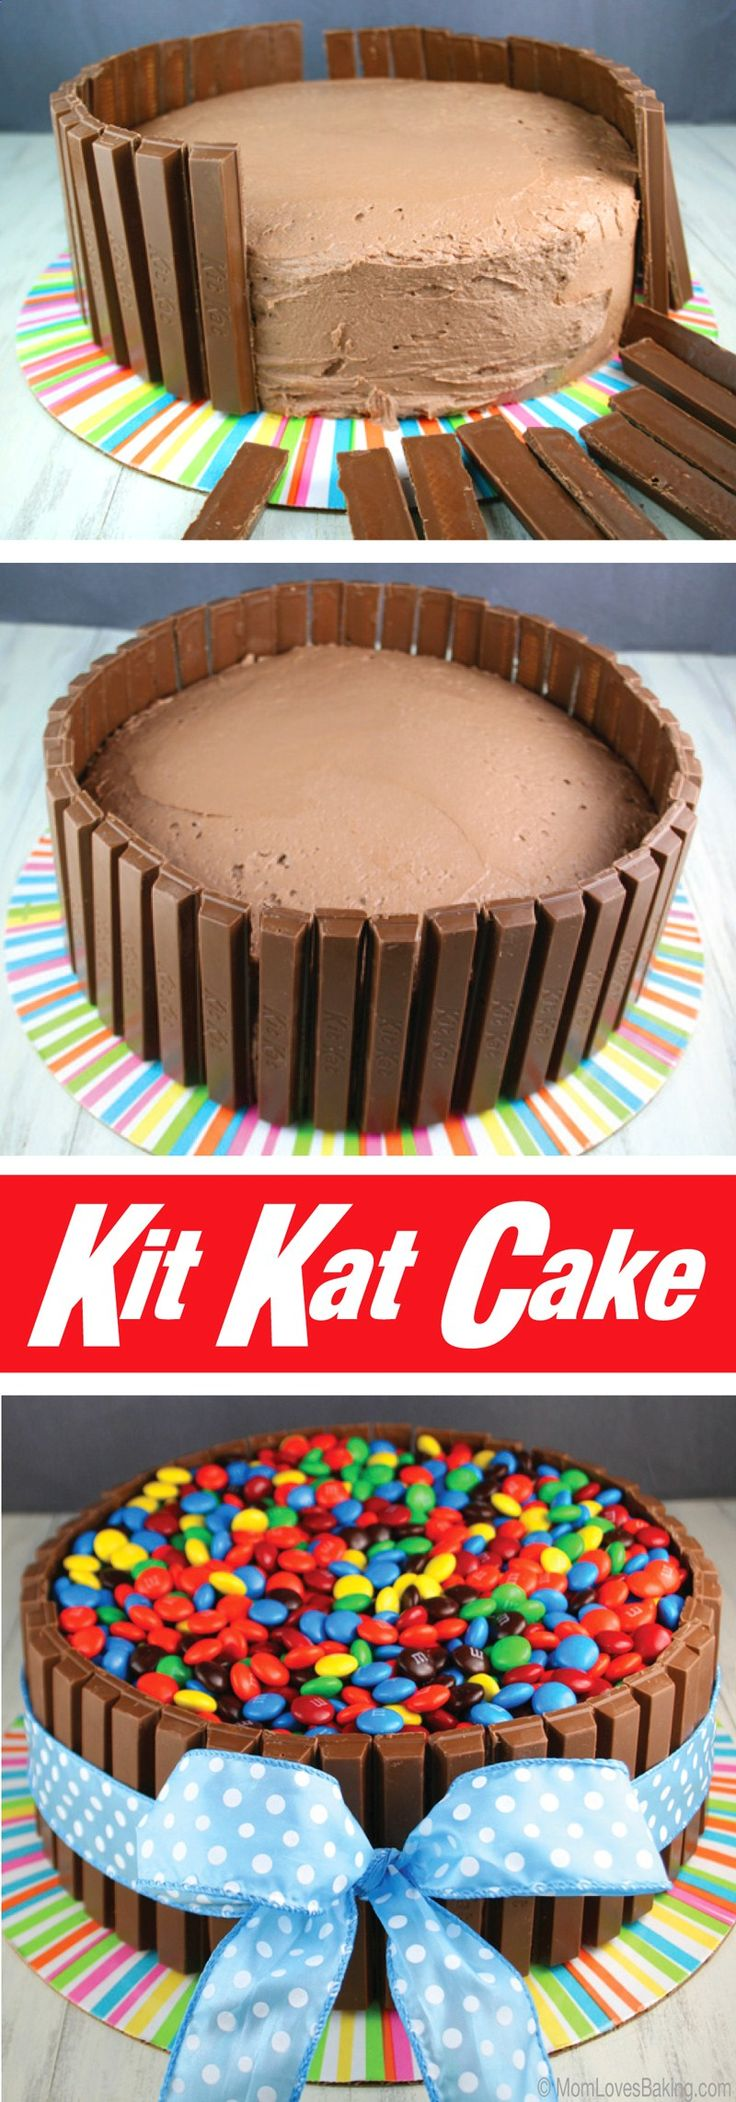 A chocolate frosted chocolate layer cake, surrounded by over 40 Kit Kat bars, topped with 2 large bags of MMs and wrapped with a beautiful ribbon thats tied in a bow.